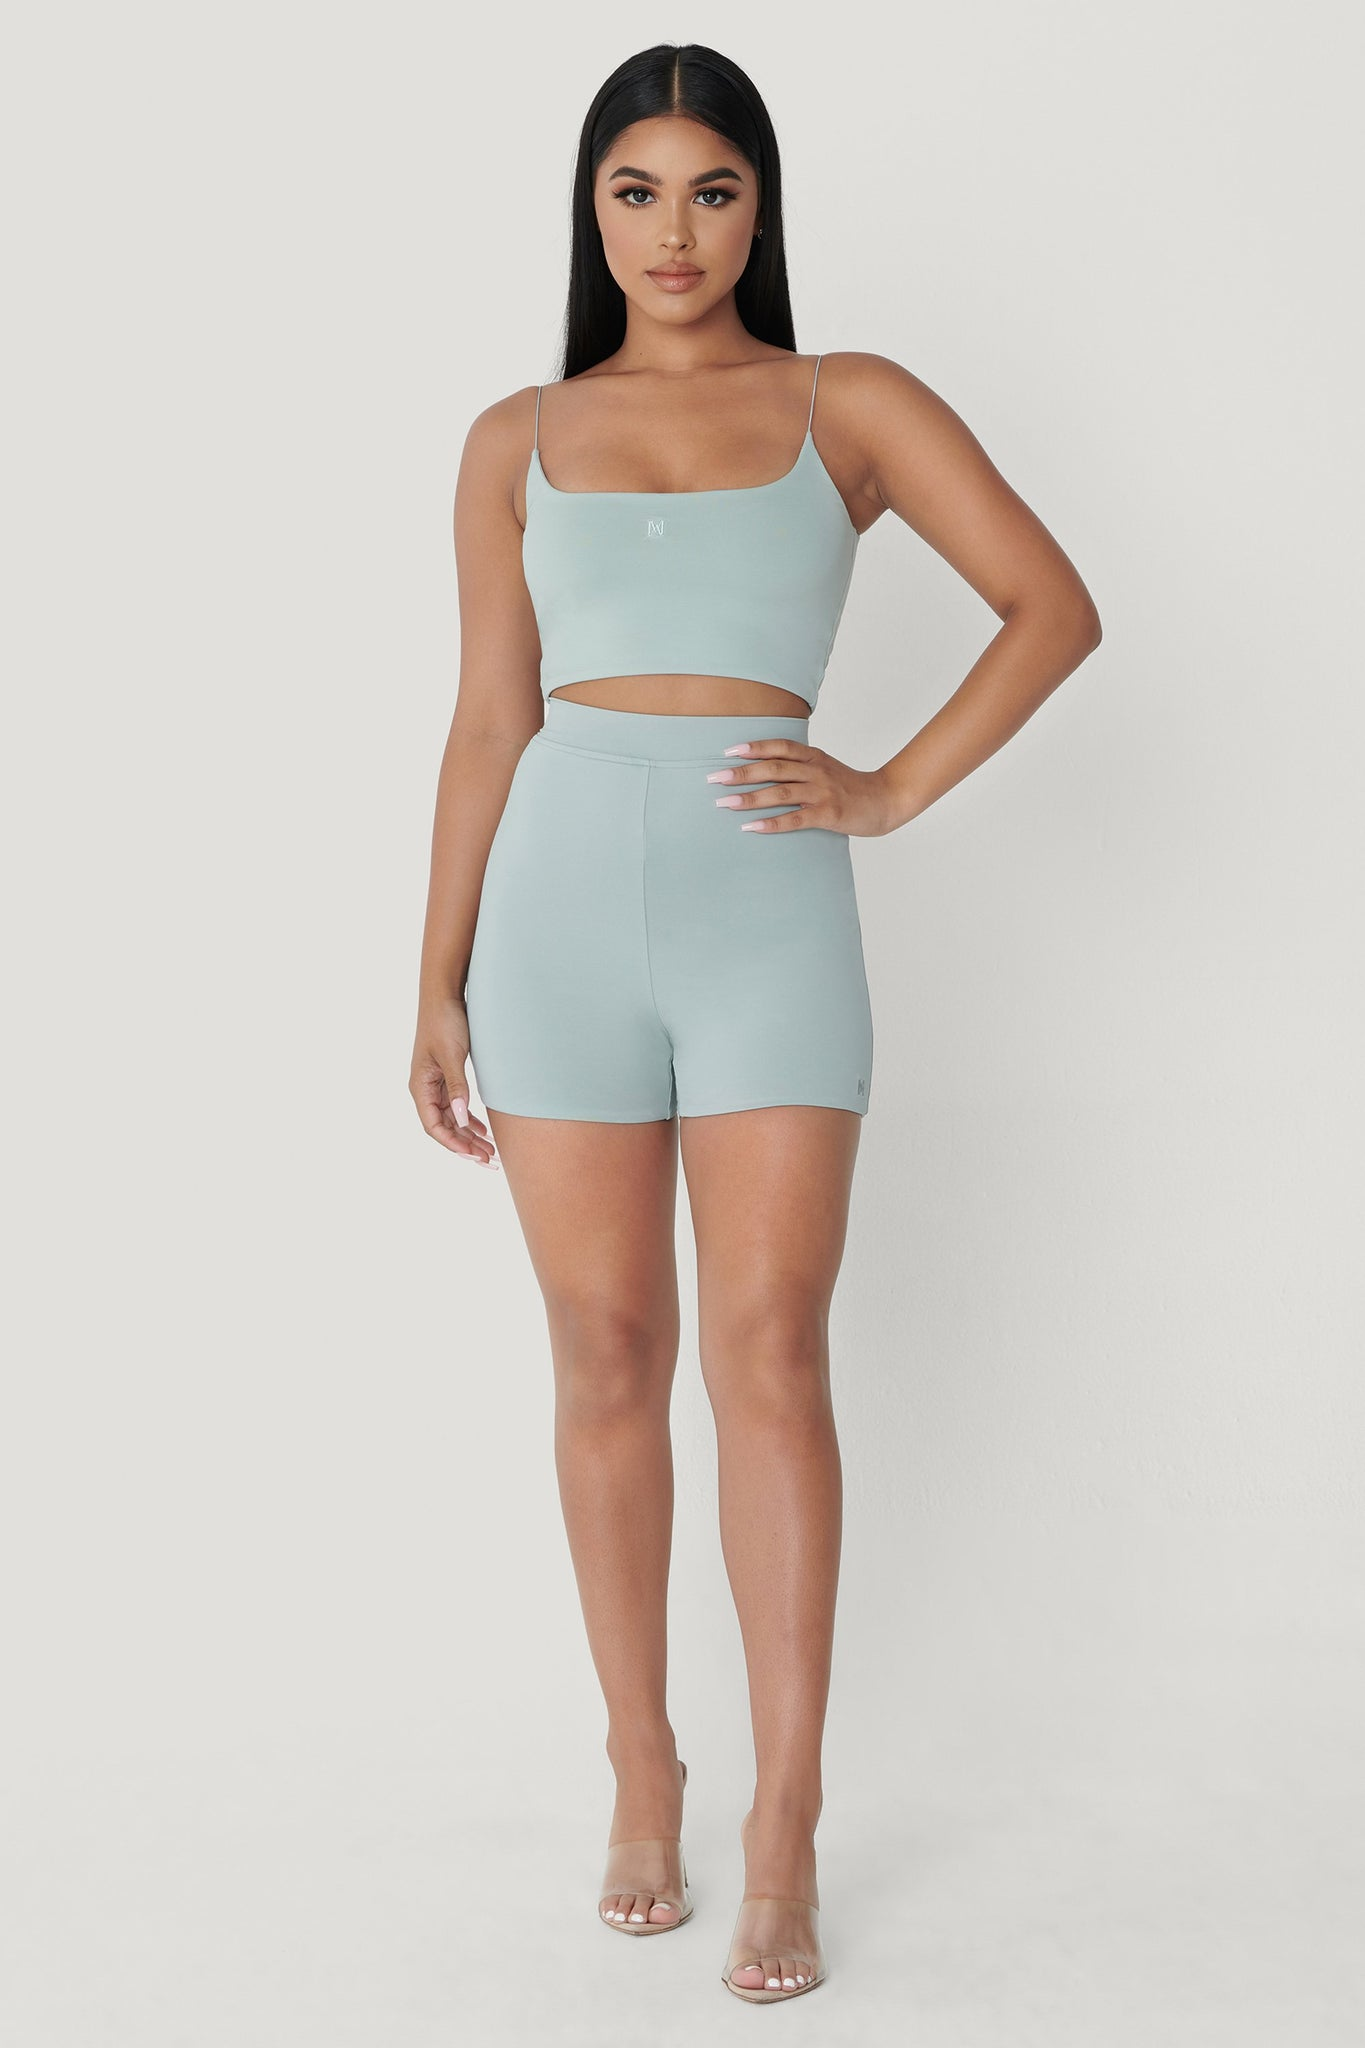 Kaiya Thin Strap Scoop Neck Crop Top - Storm - MESHKI